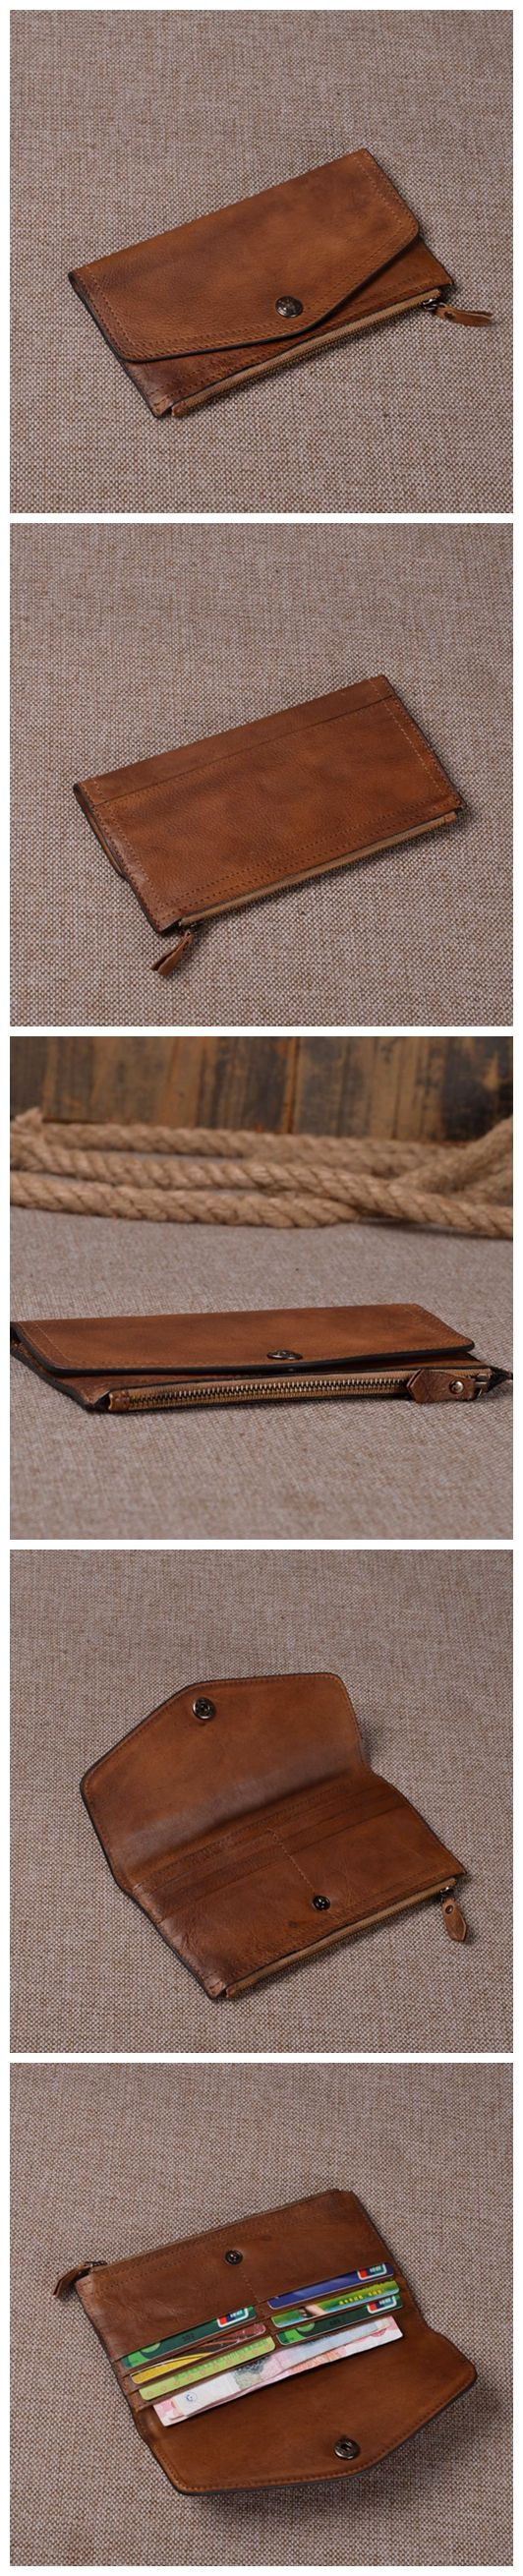 VINTAGE BROWN LEATHER WALLET, WOMEN SHORT PURSE, HANDCRAFTED CARD HOLDER, LEATHER DESIGN, LEATHER CASE, LEATHER ART